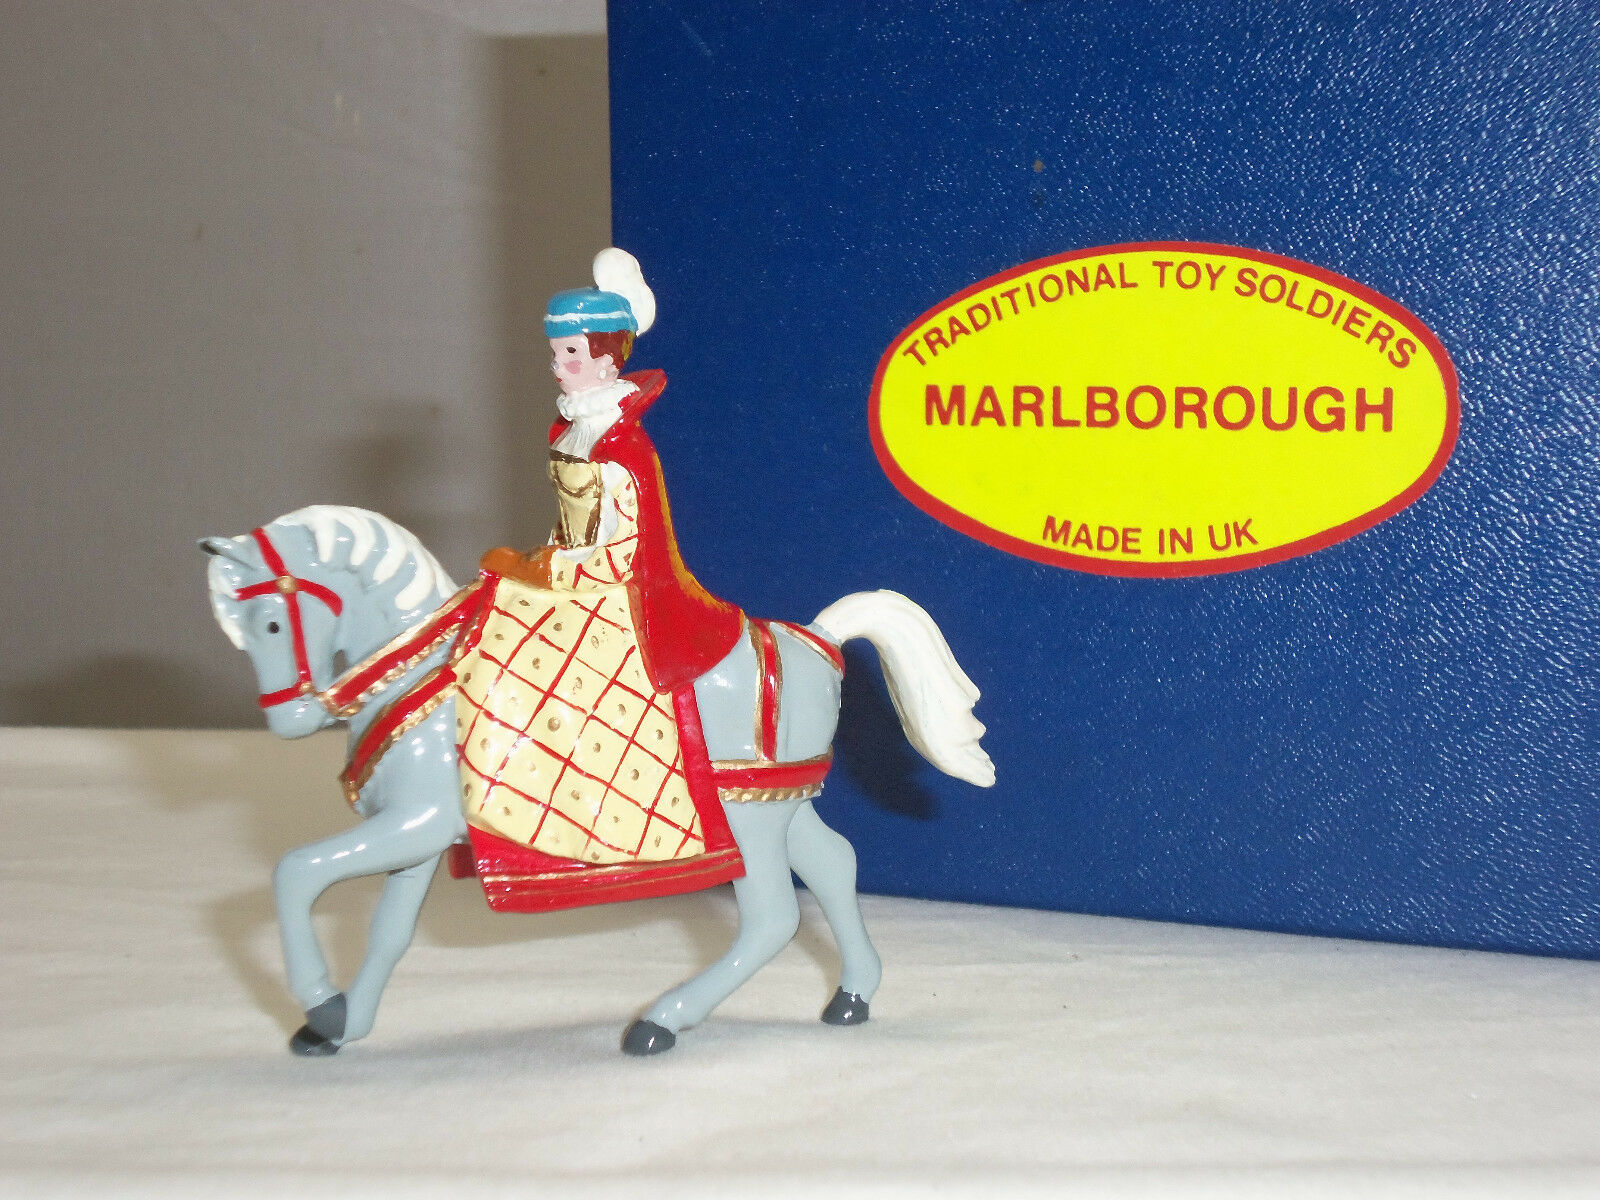 MARLBgoldUGH C2 MARY QUEEN OF SCOTS MOUNTED METAL TOY SOLDIER FIGURE